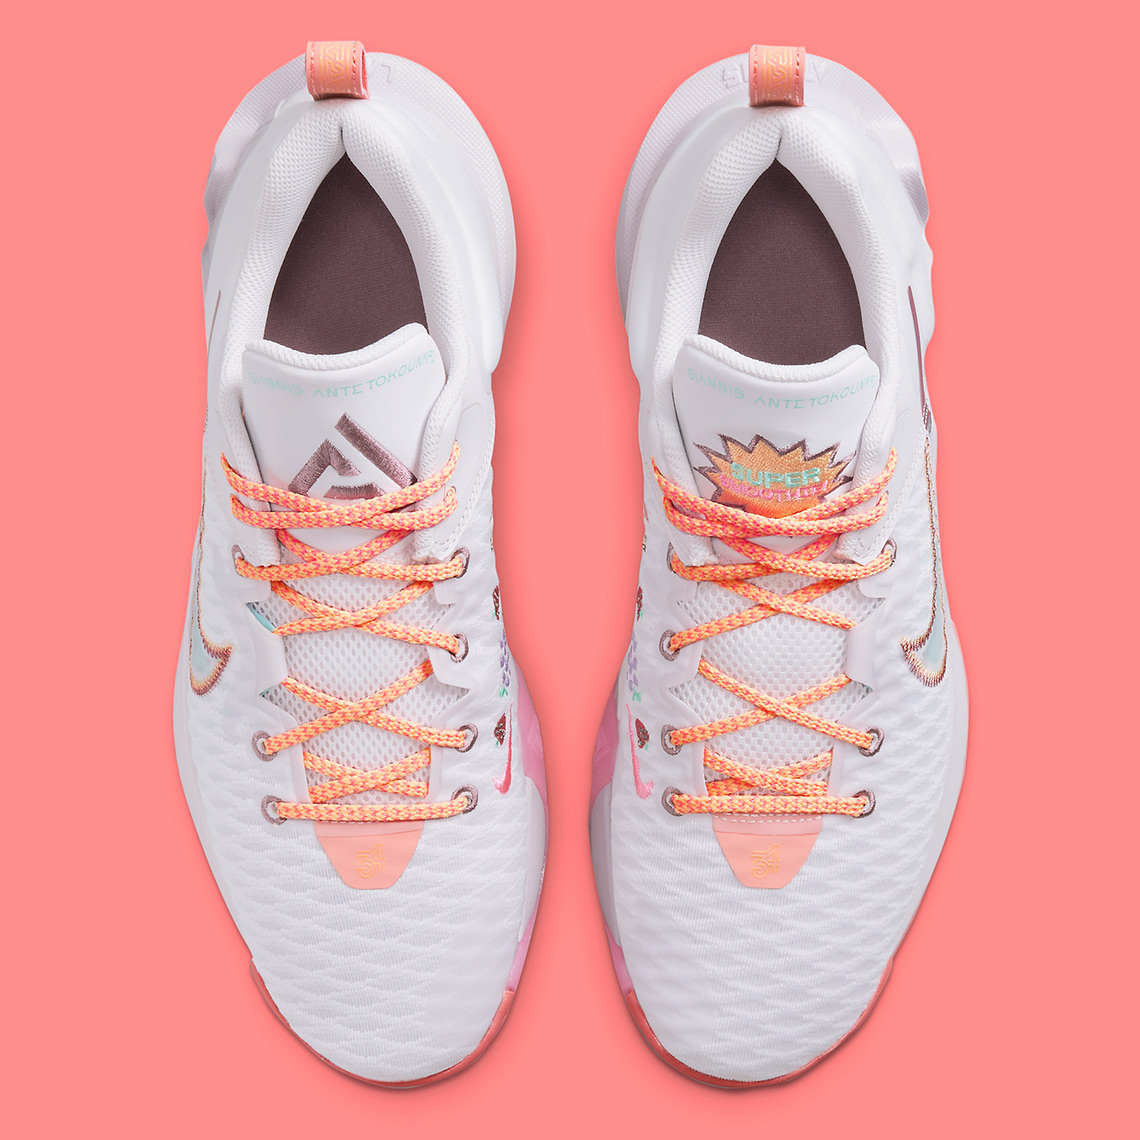 nike giannis immortality force field venice crimson bliss melon tint light mulberry DH4470 500 8